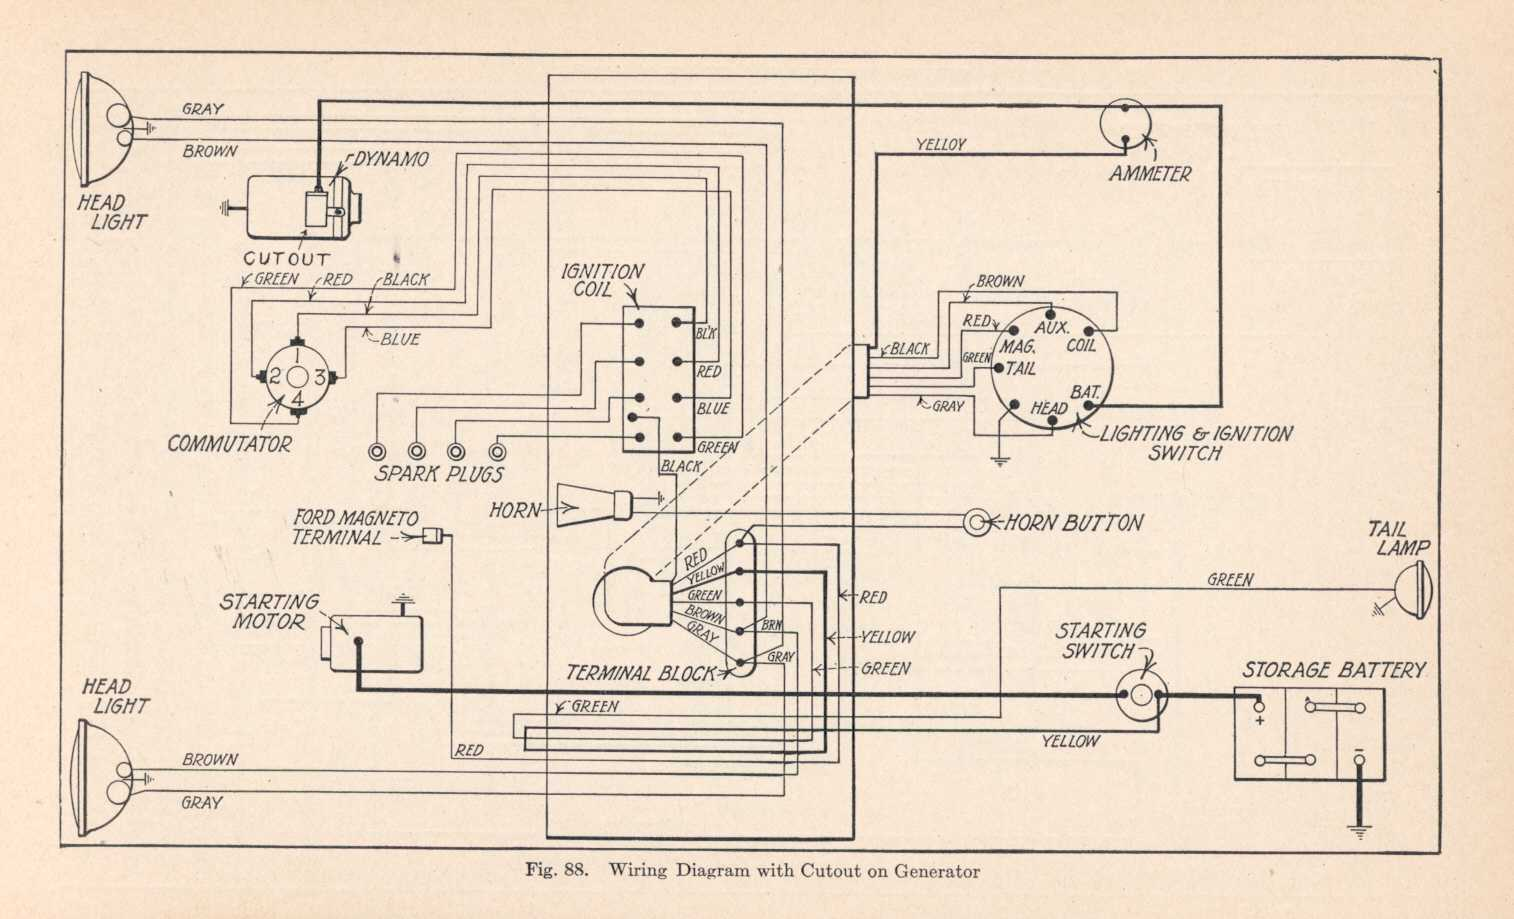 crosley car wiring diagram crosley for motor news images about 2002 Ford Focus Fuse Diagram ford model a wiring diagram wiring diagram and hernes ford fiesta wiring diagram mk4 and schematic